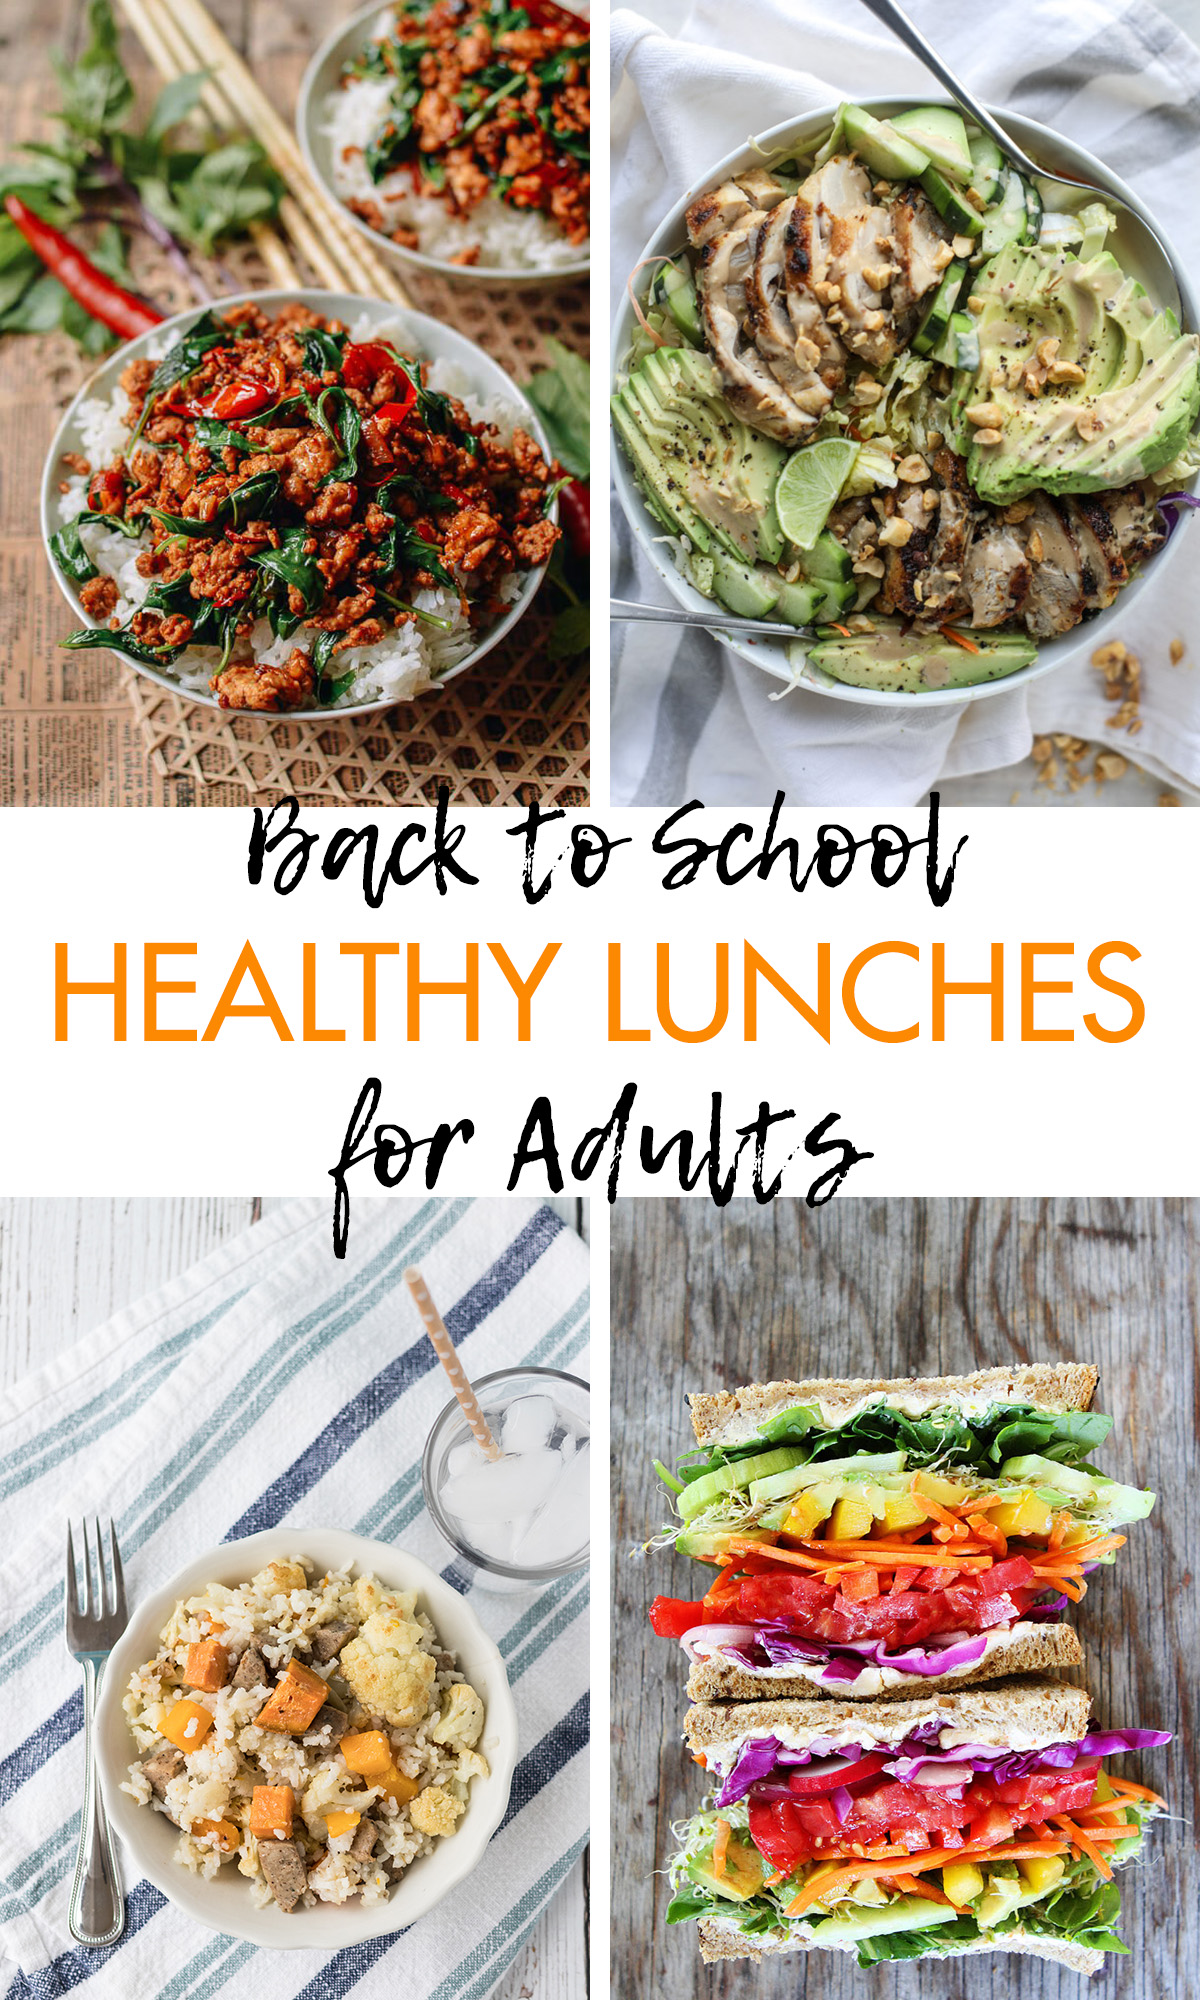 Back to School Healthy Lunches for Adults